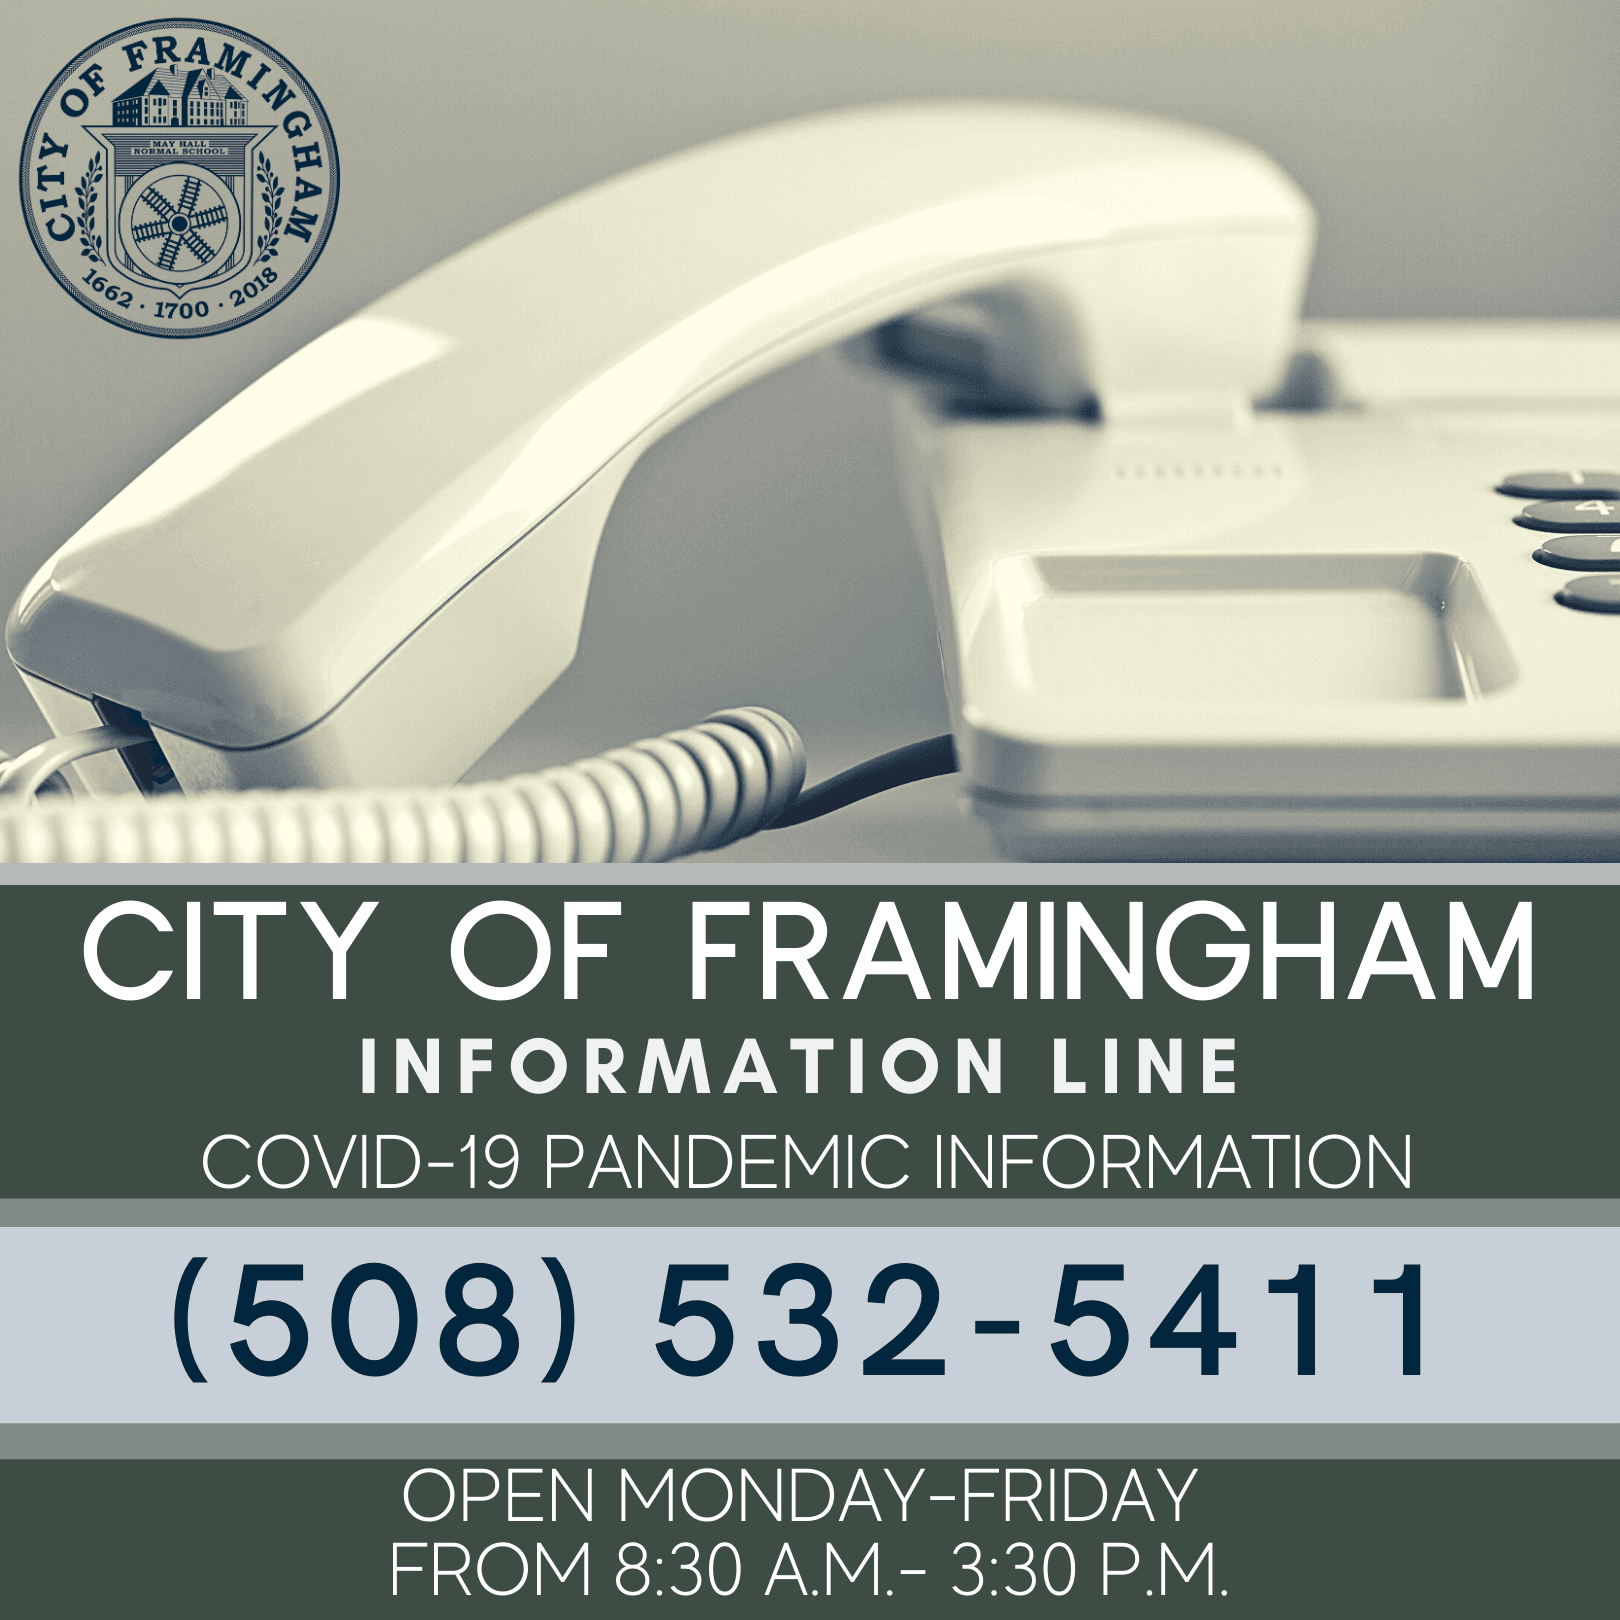 City of Framingham Information Line, COVID-19 Pandemic Information,  508-532-5411, Open M-F, 8:30 AM